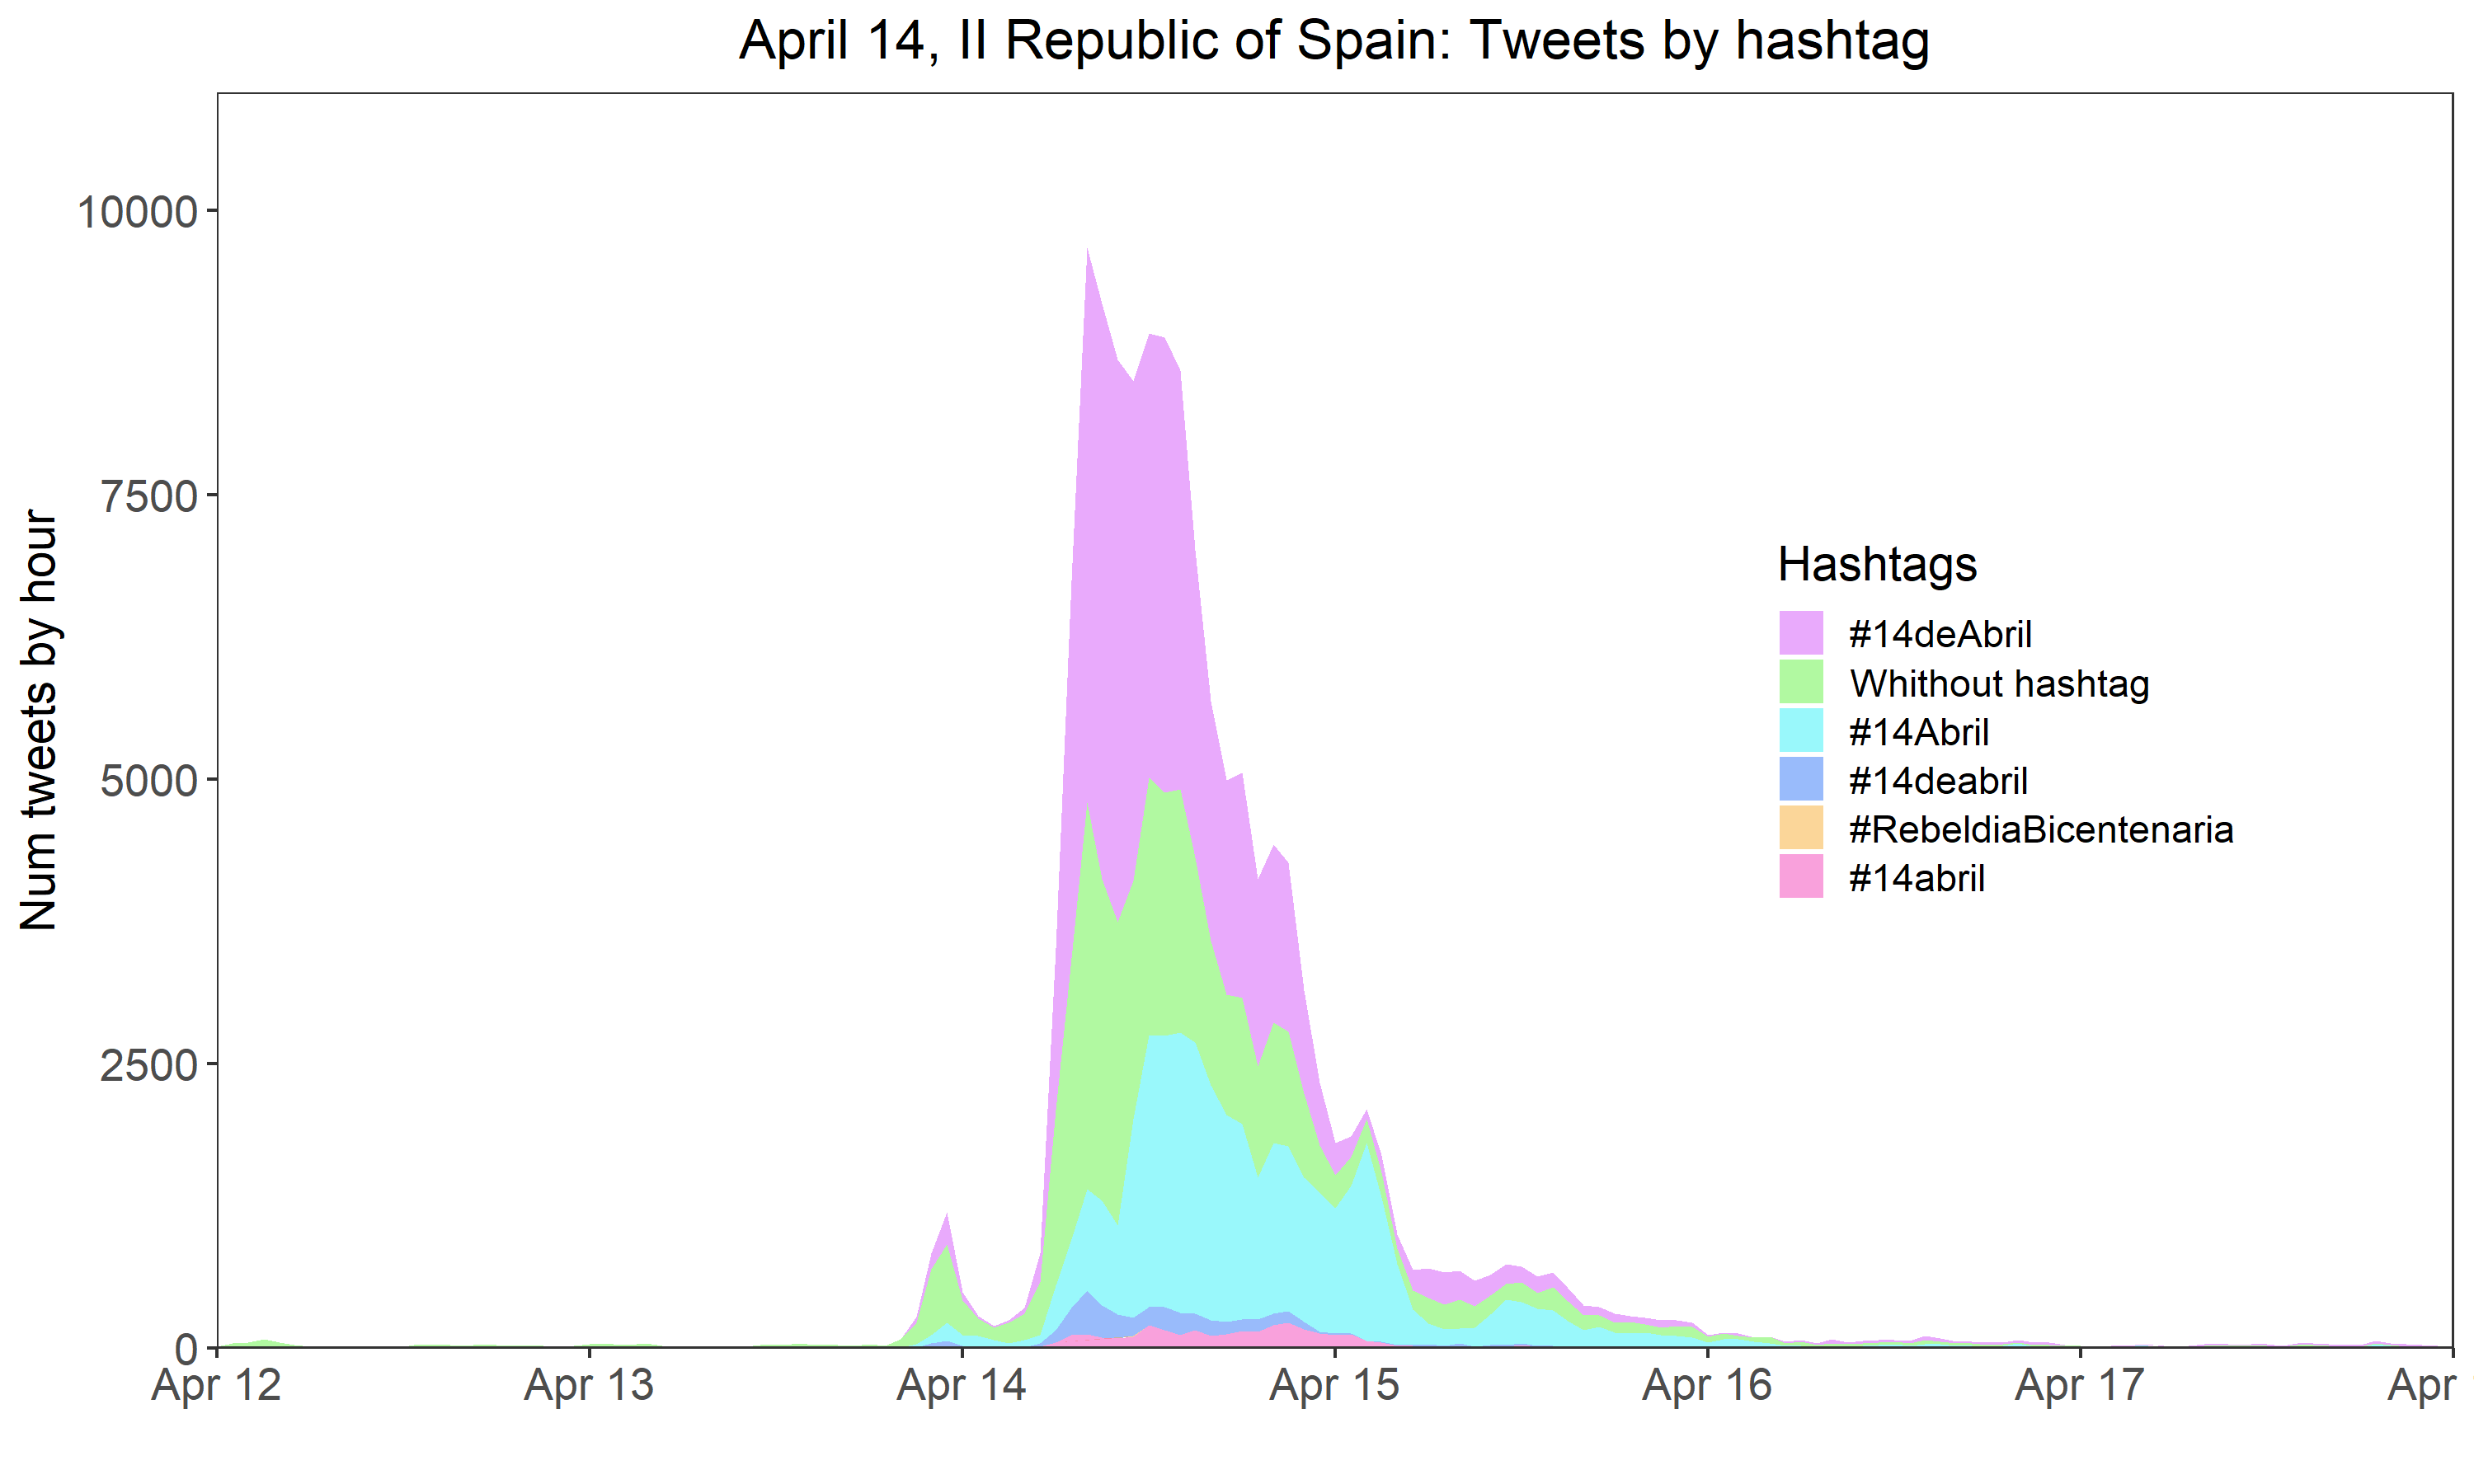 FIG. 2. PRESENCE OF HASHTAGS IN TWEETS